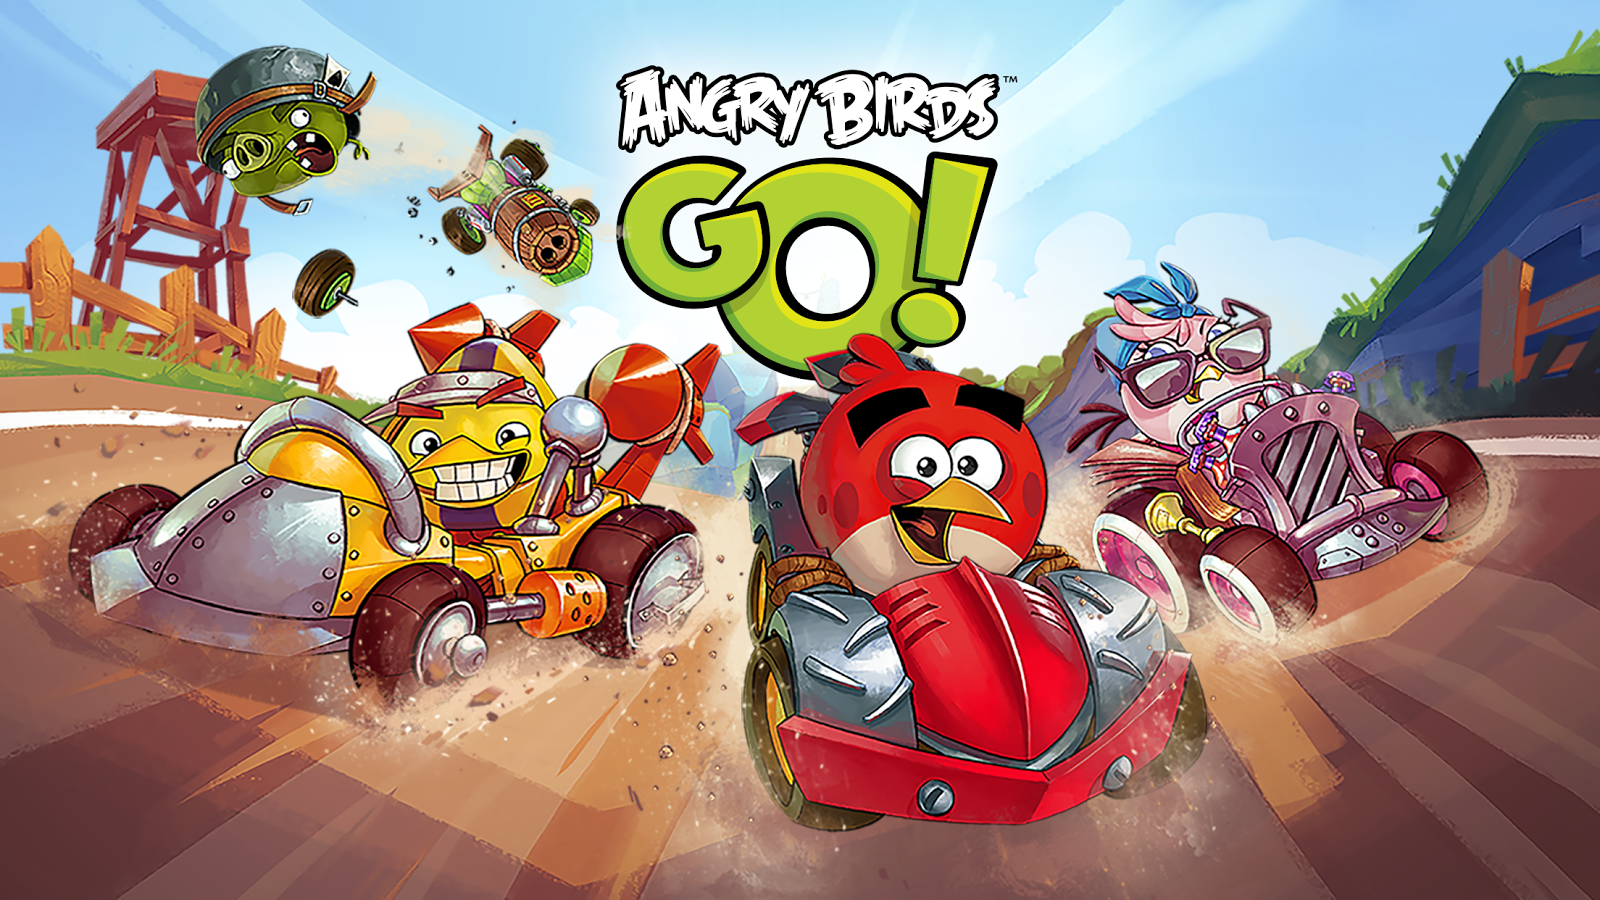 Angry birds go! | android gamepad games.